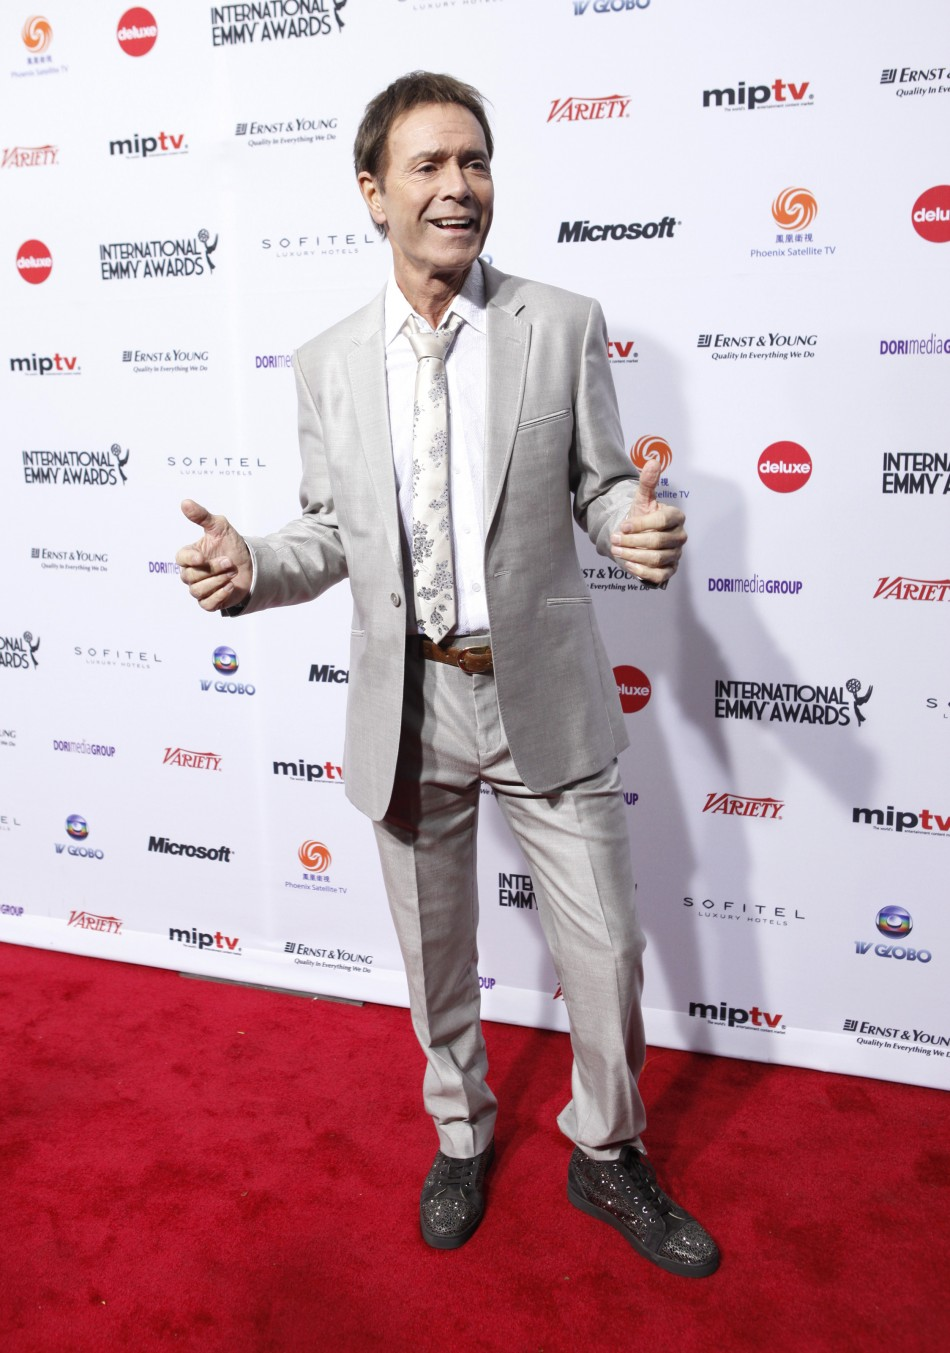 British musician Cliff Richards arrives at the International Emmy Awards in New York